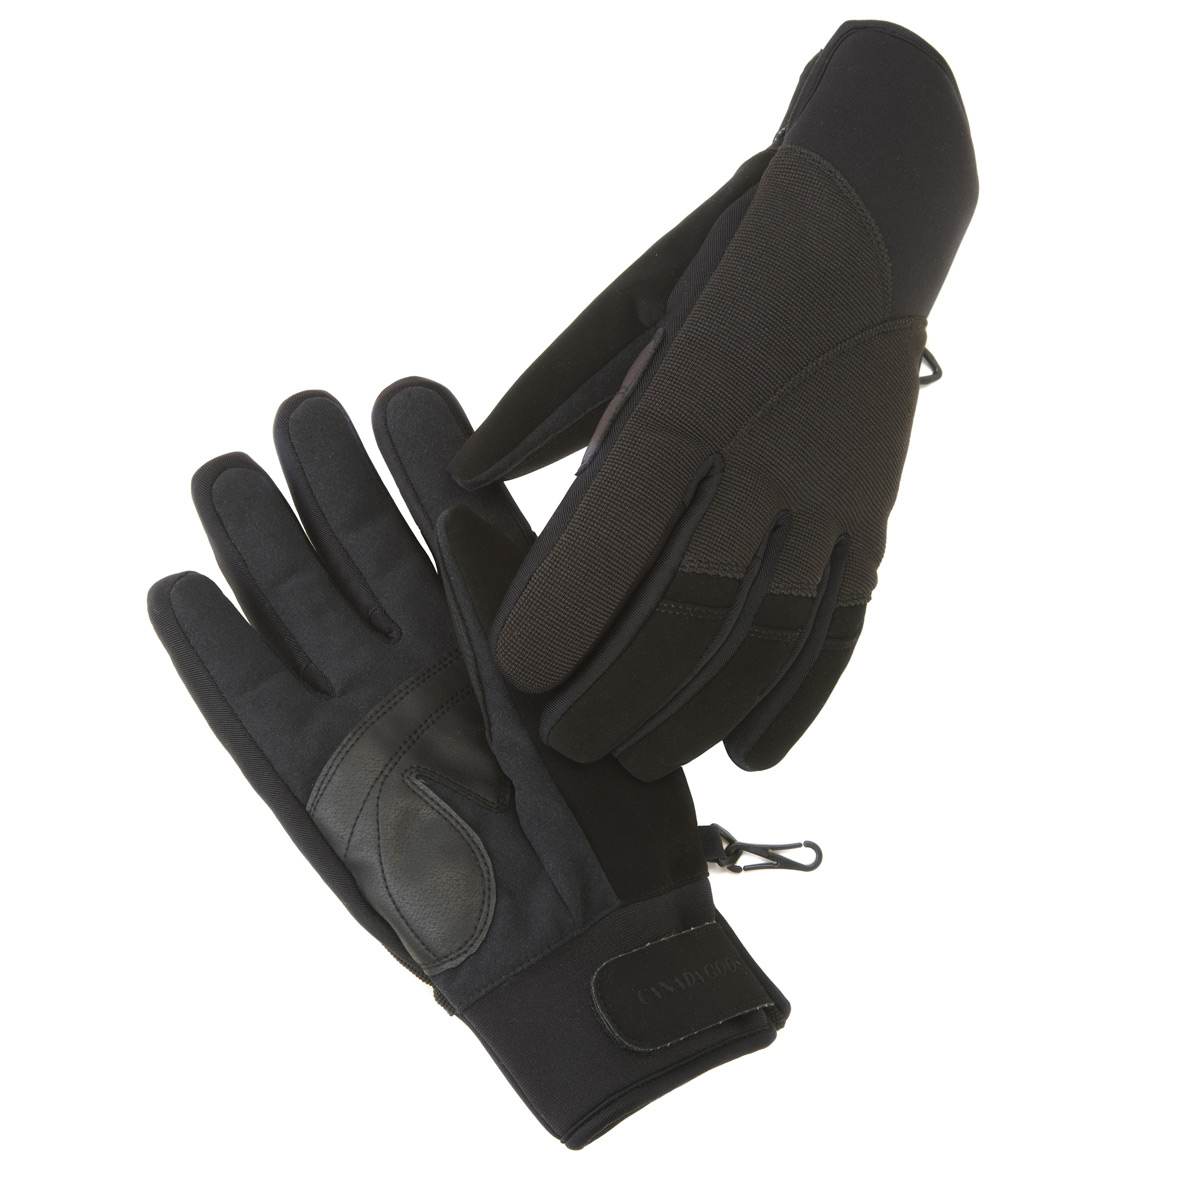 Canada Goose S Winter Driving Glove BLACK For Men